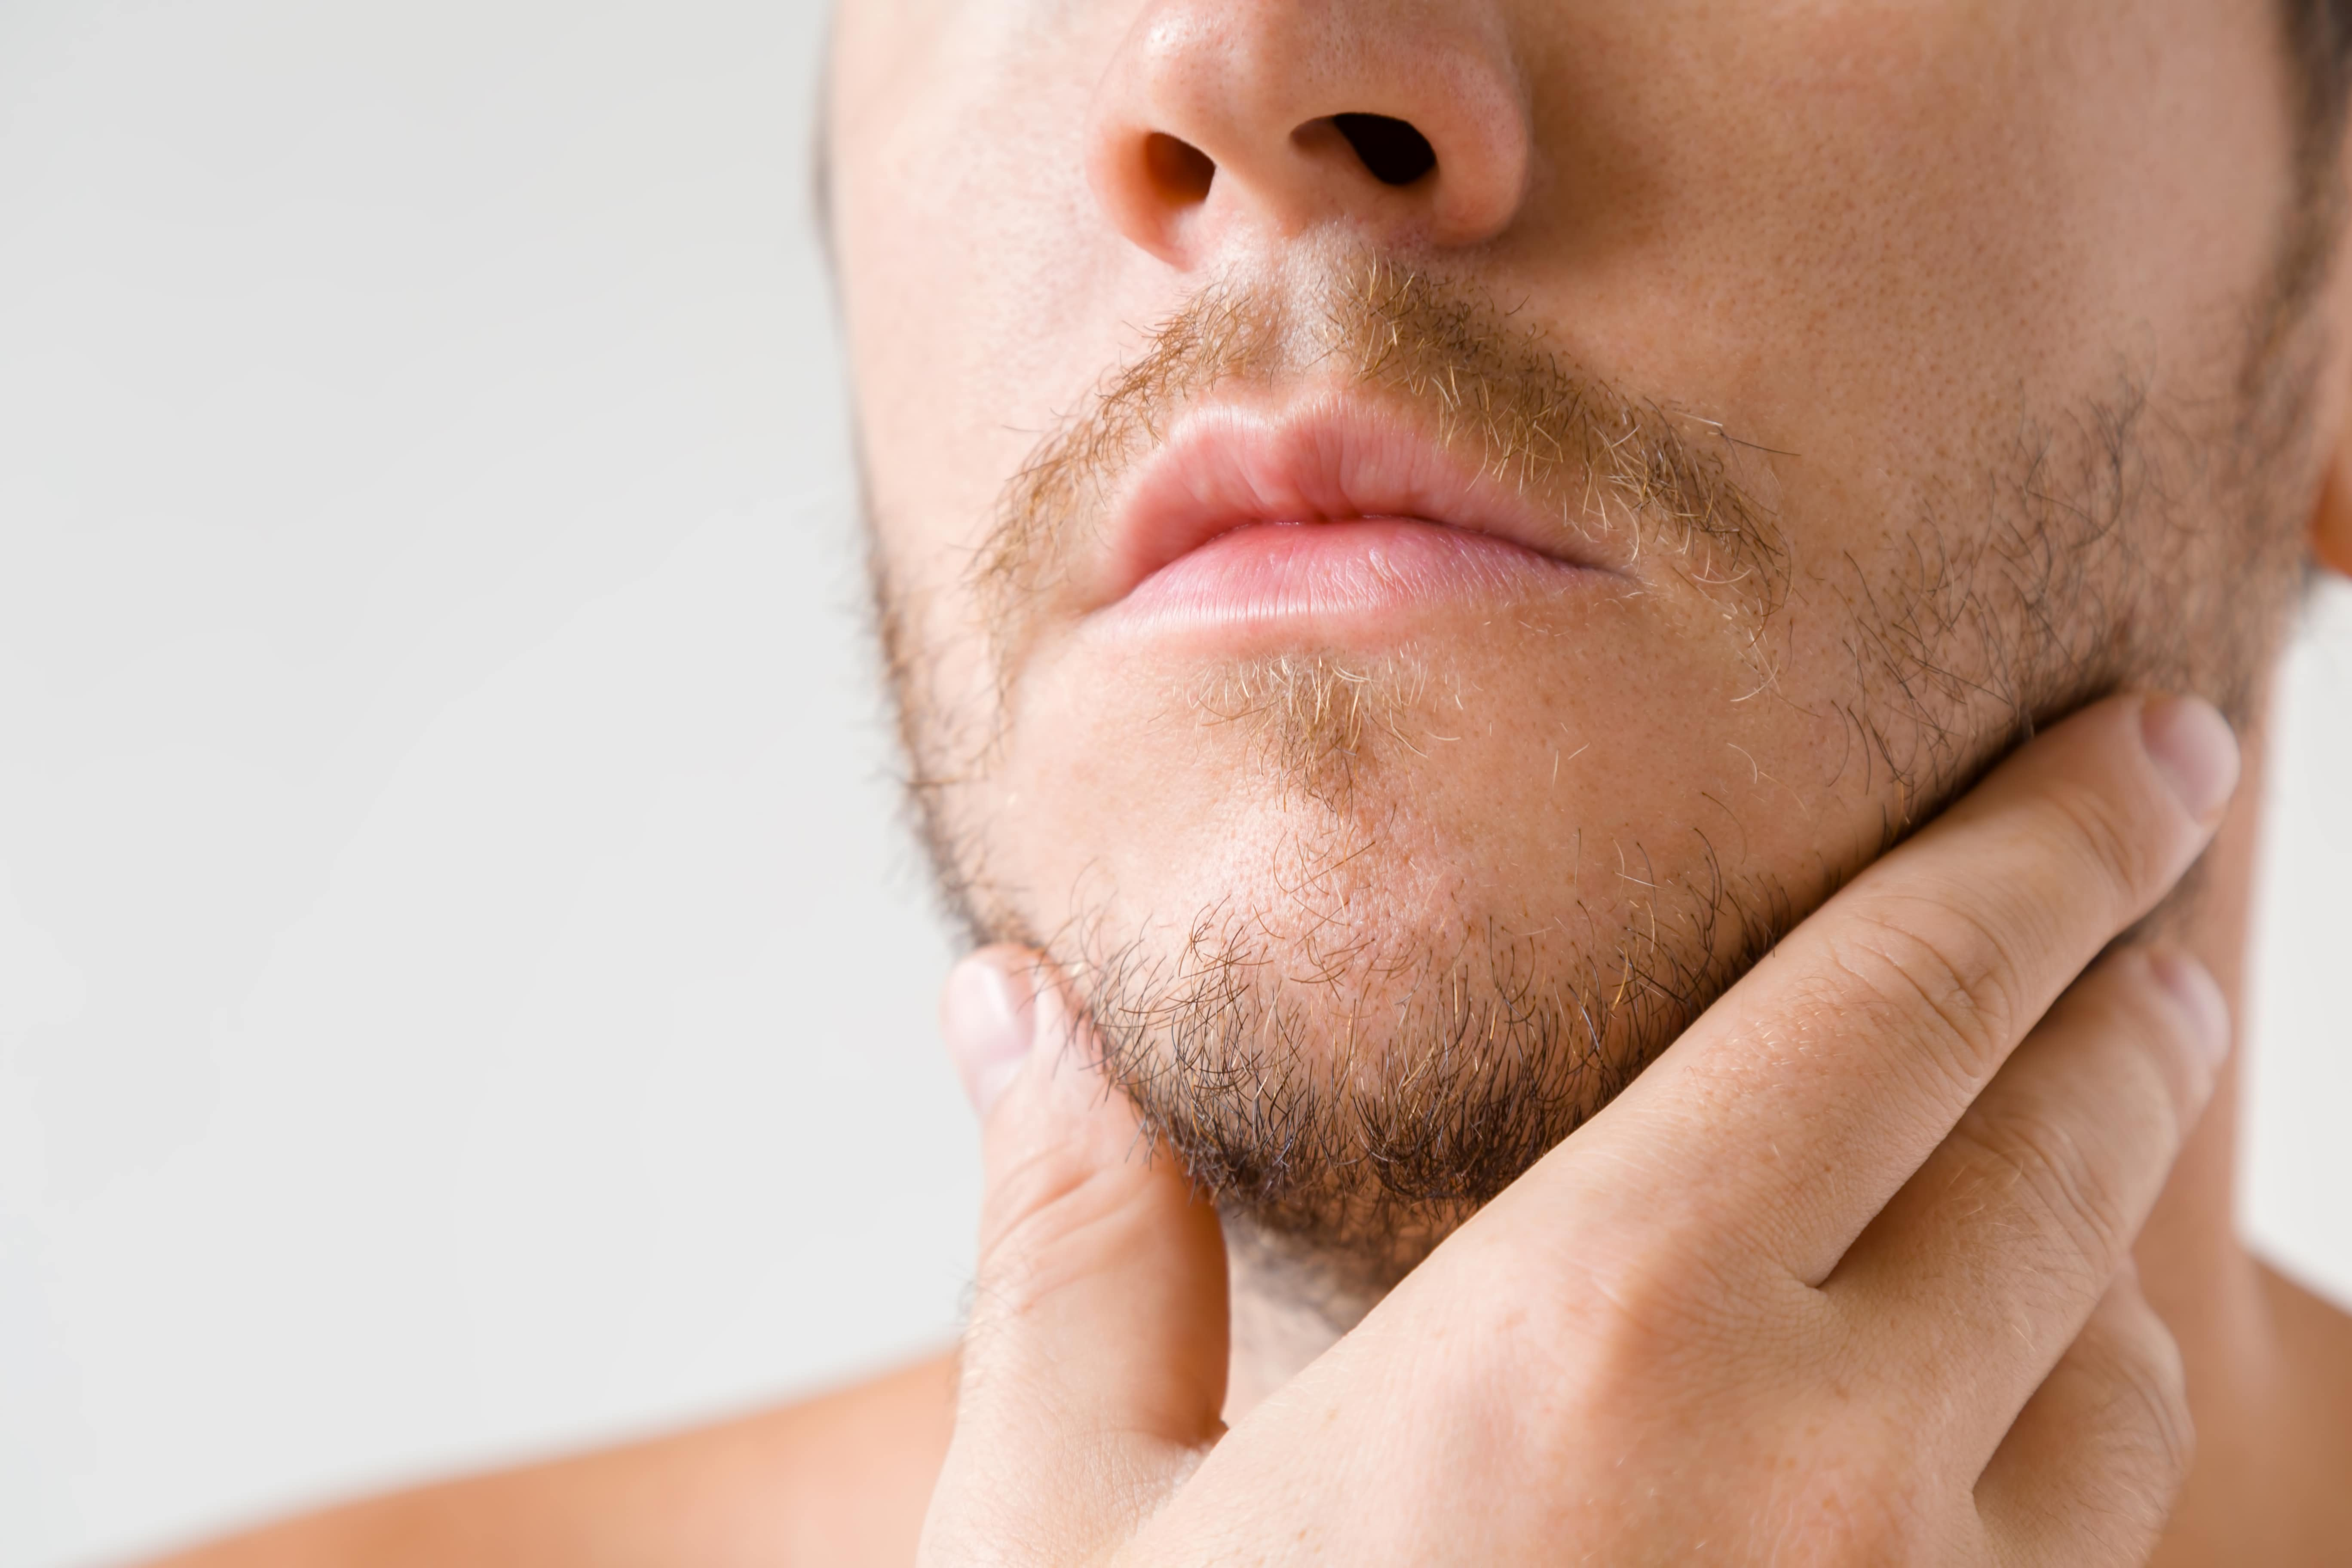 Smart-Lipo-Neck-men-min Facelift for Men in Scottsdale